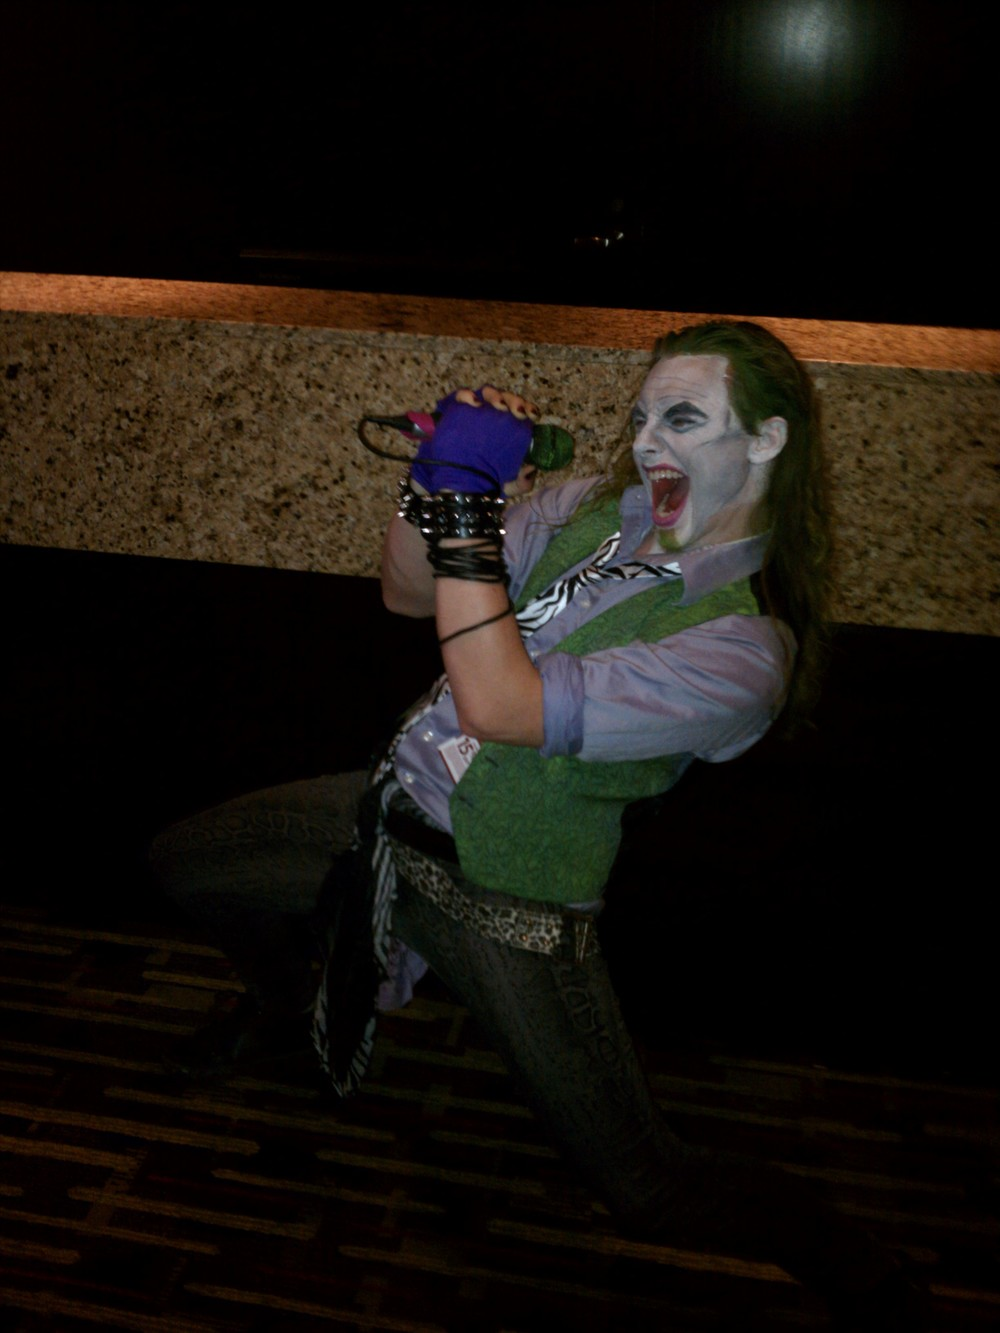 Joker rockin' out